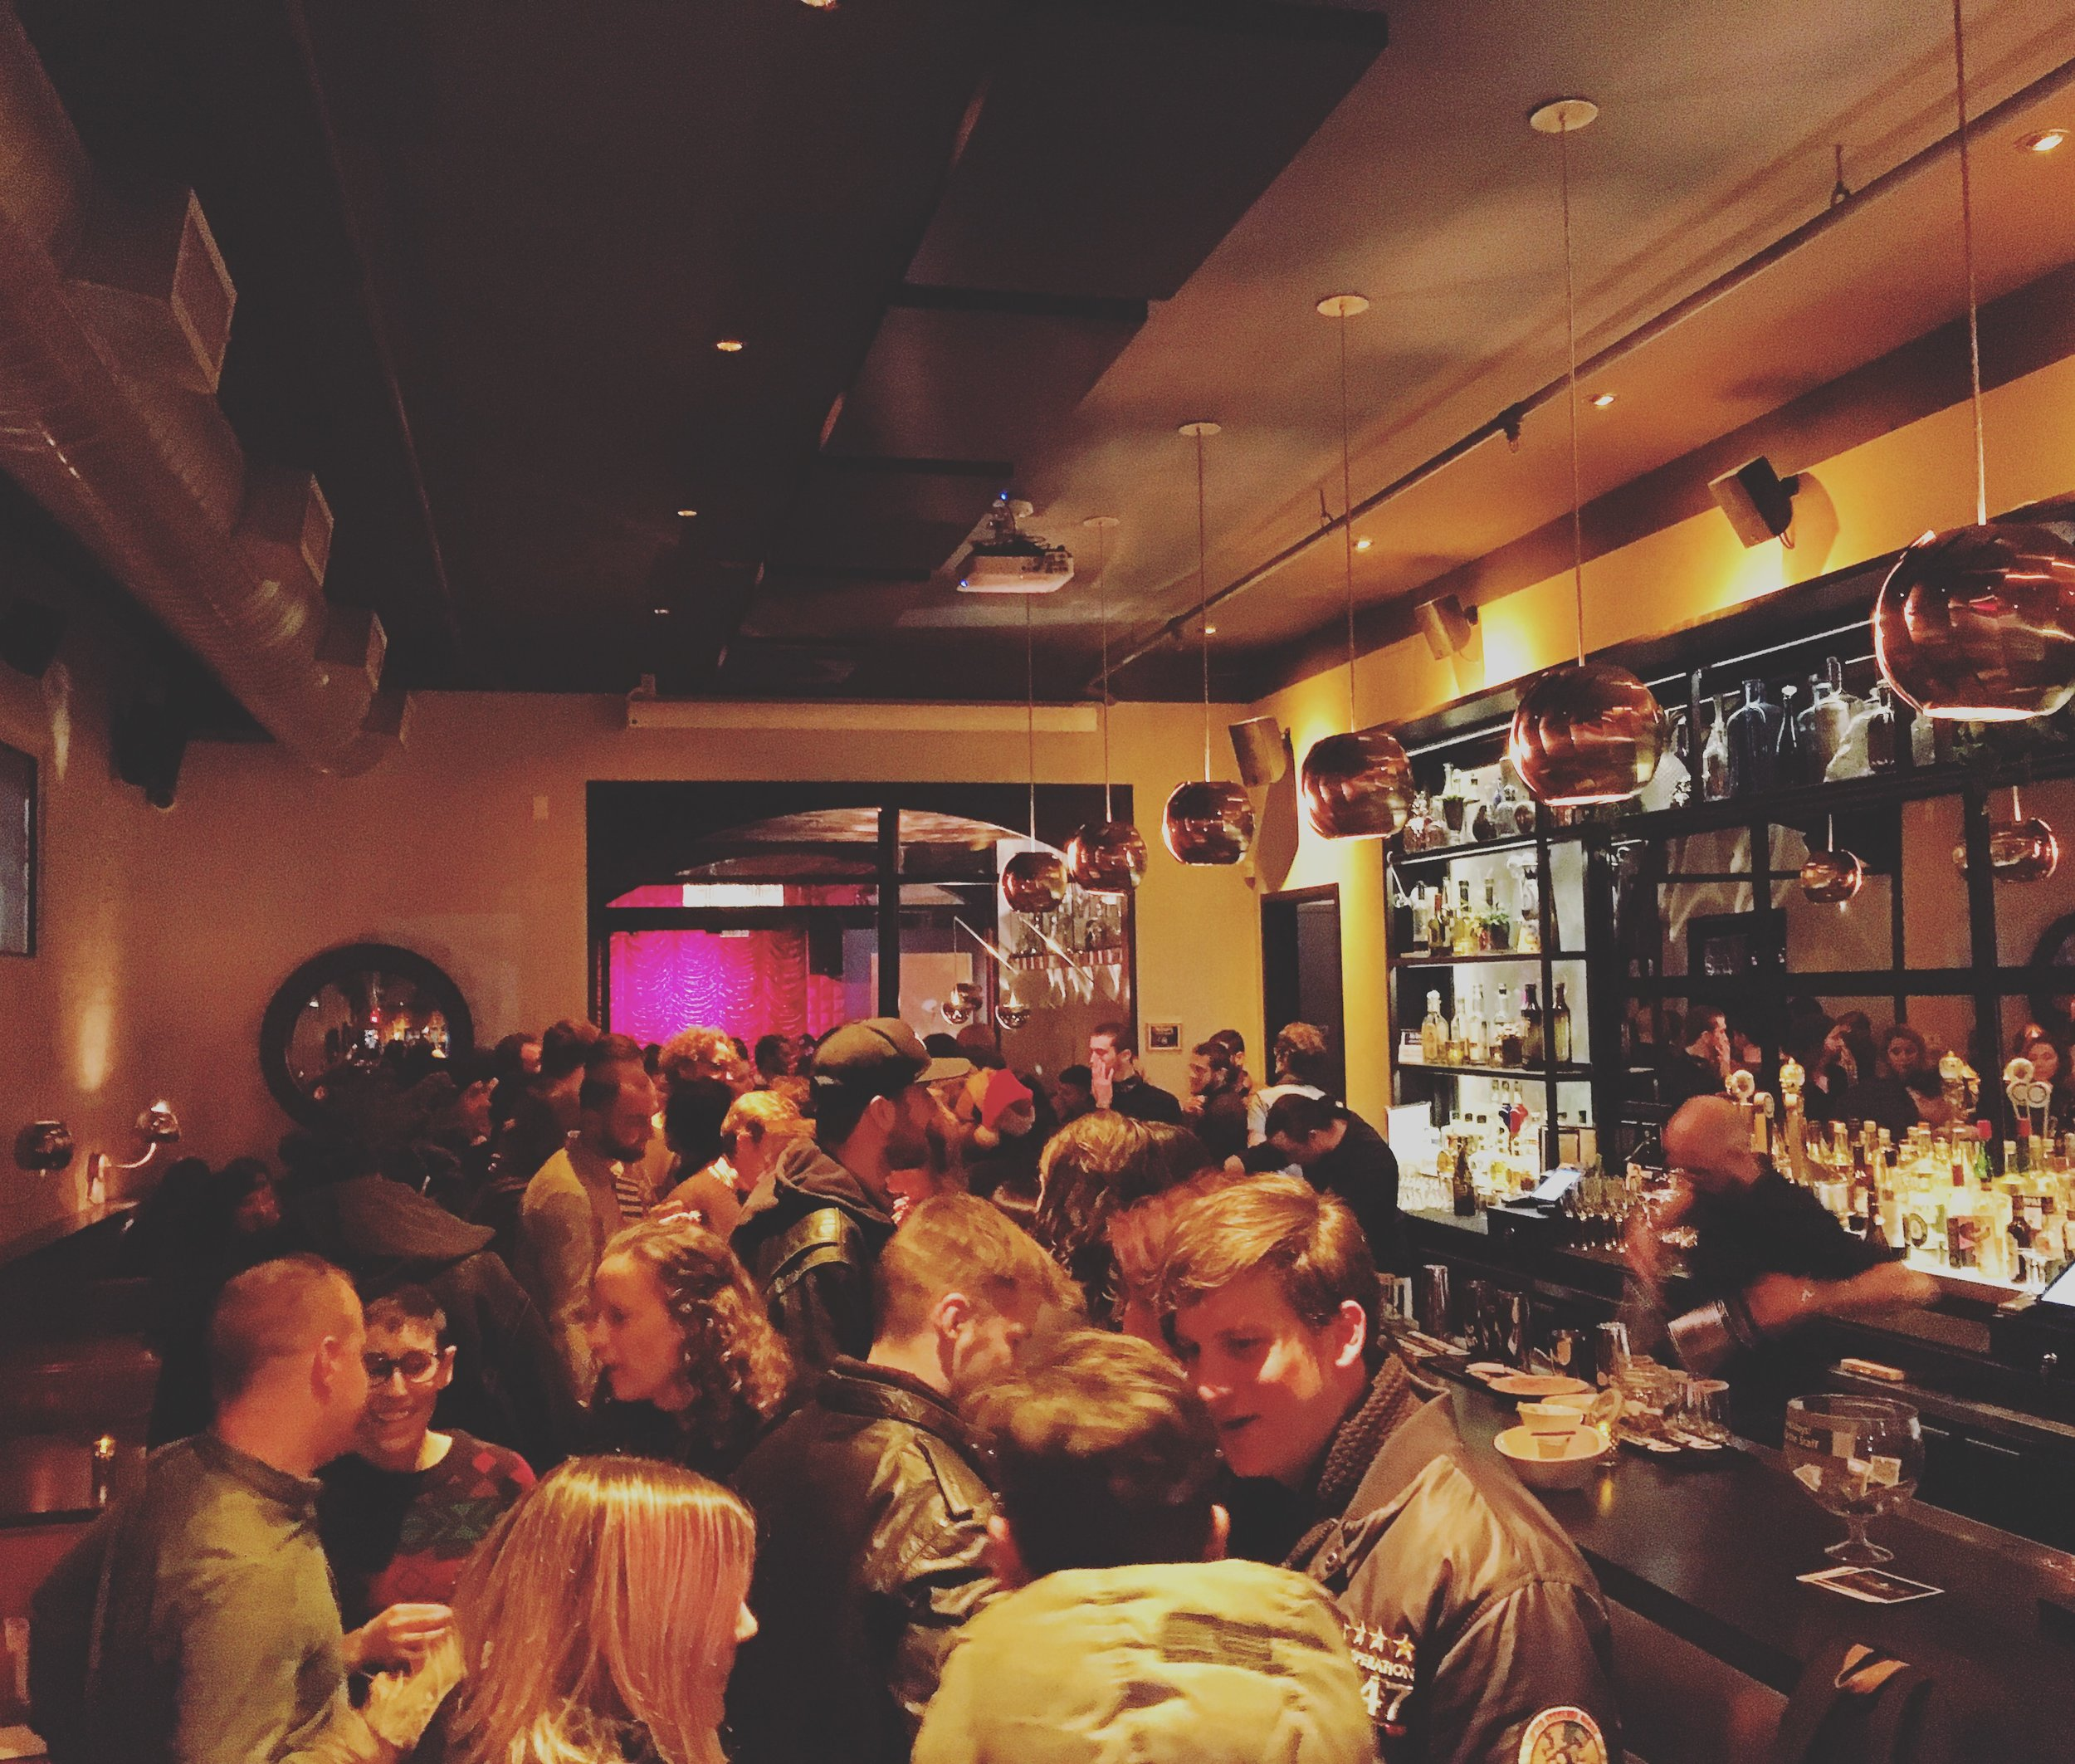 crowded bar - private event.JPG